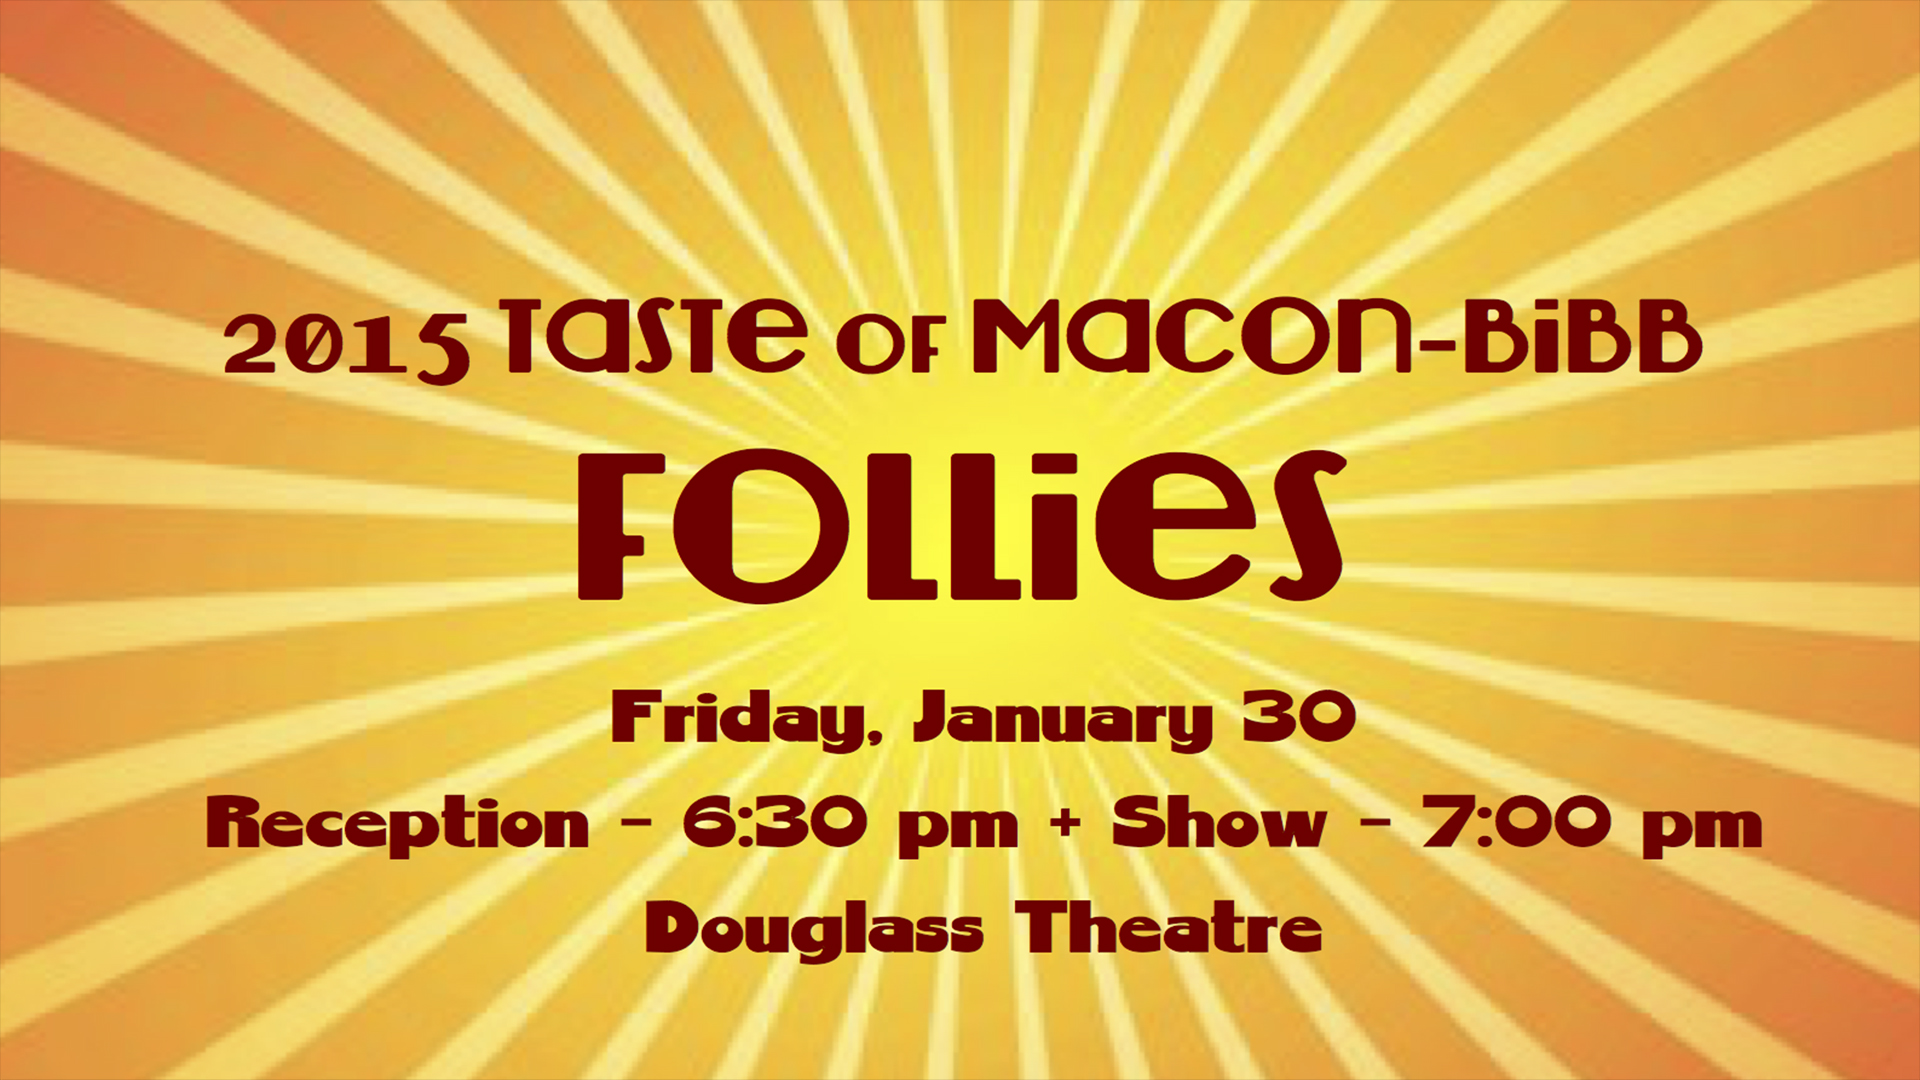 Taste of Macon-Bibb Follies 2015